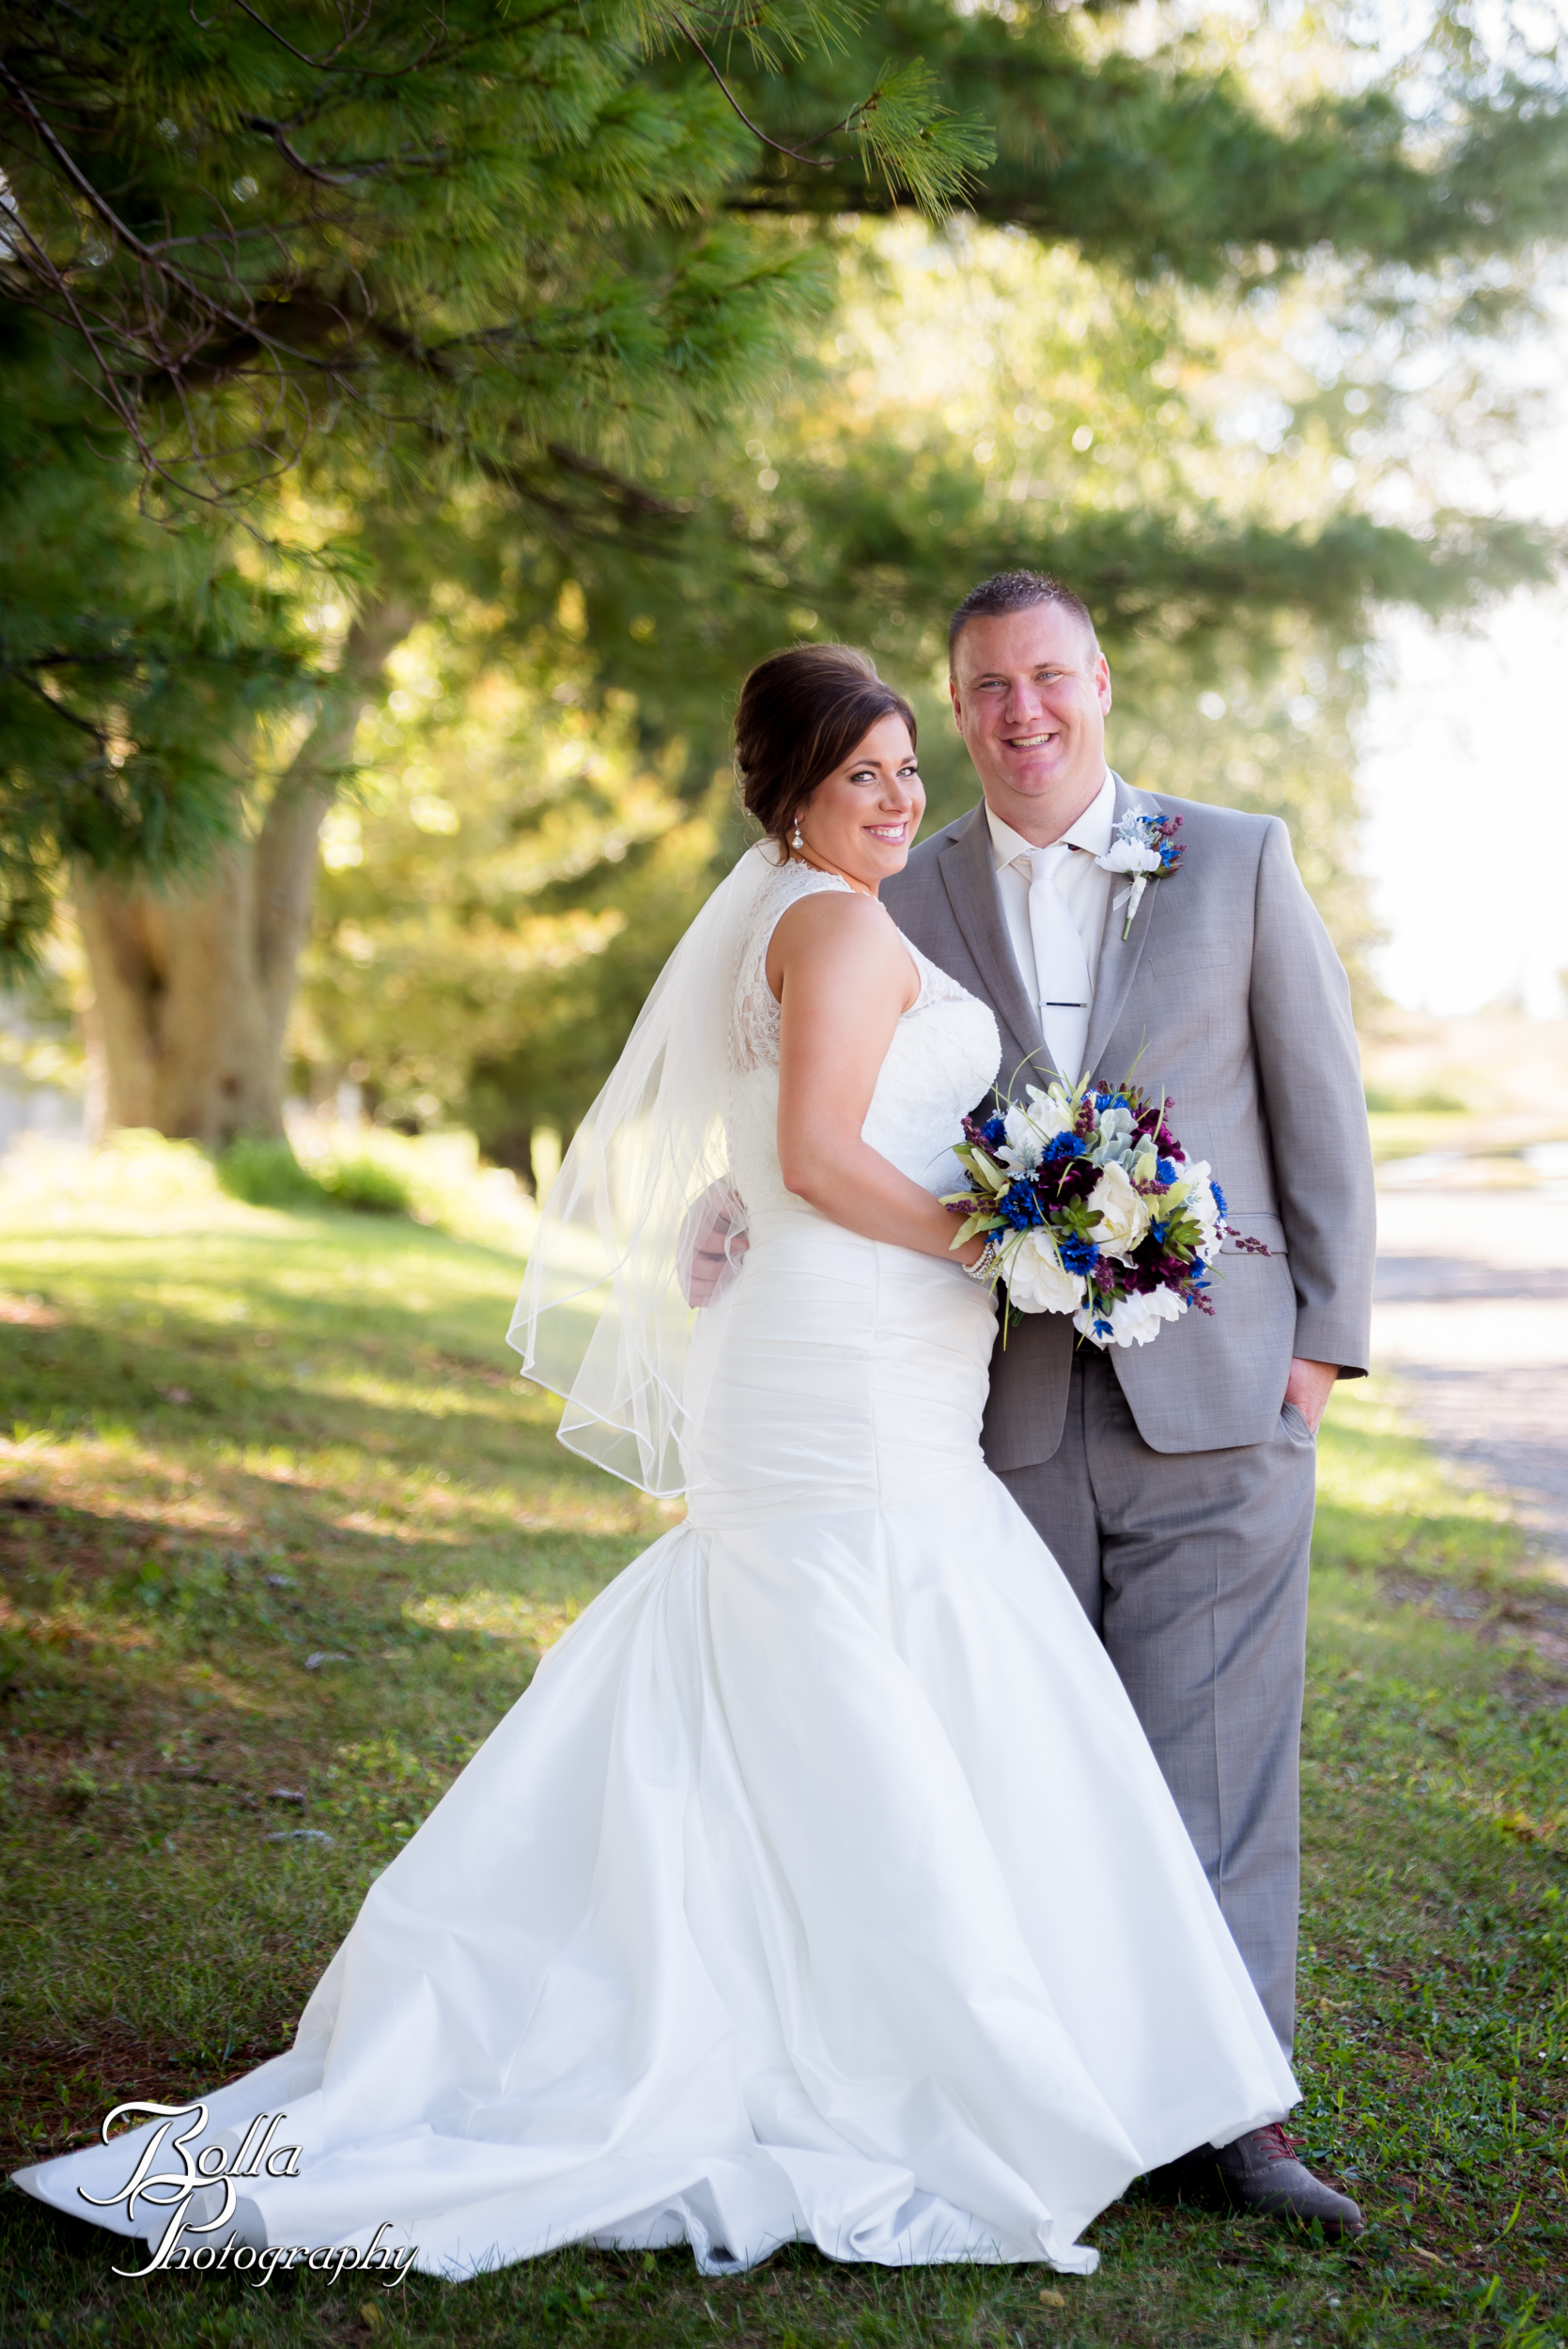 Bolla_photography_edwardsville_wedding_photographer_st_louis_weddings_Heinzmann-0004.jpg